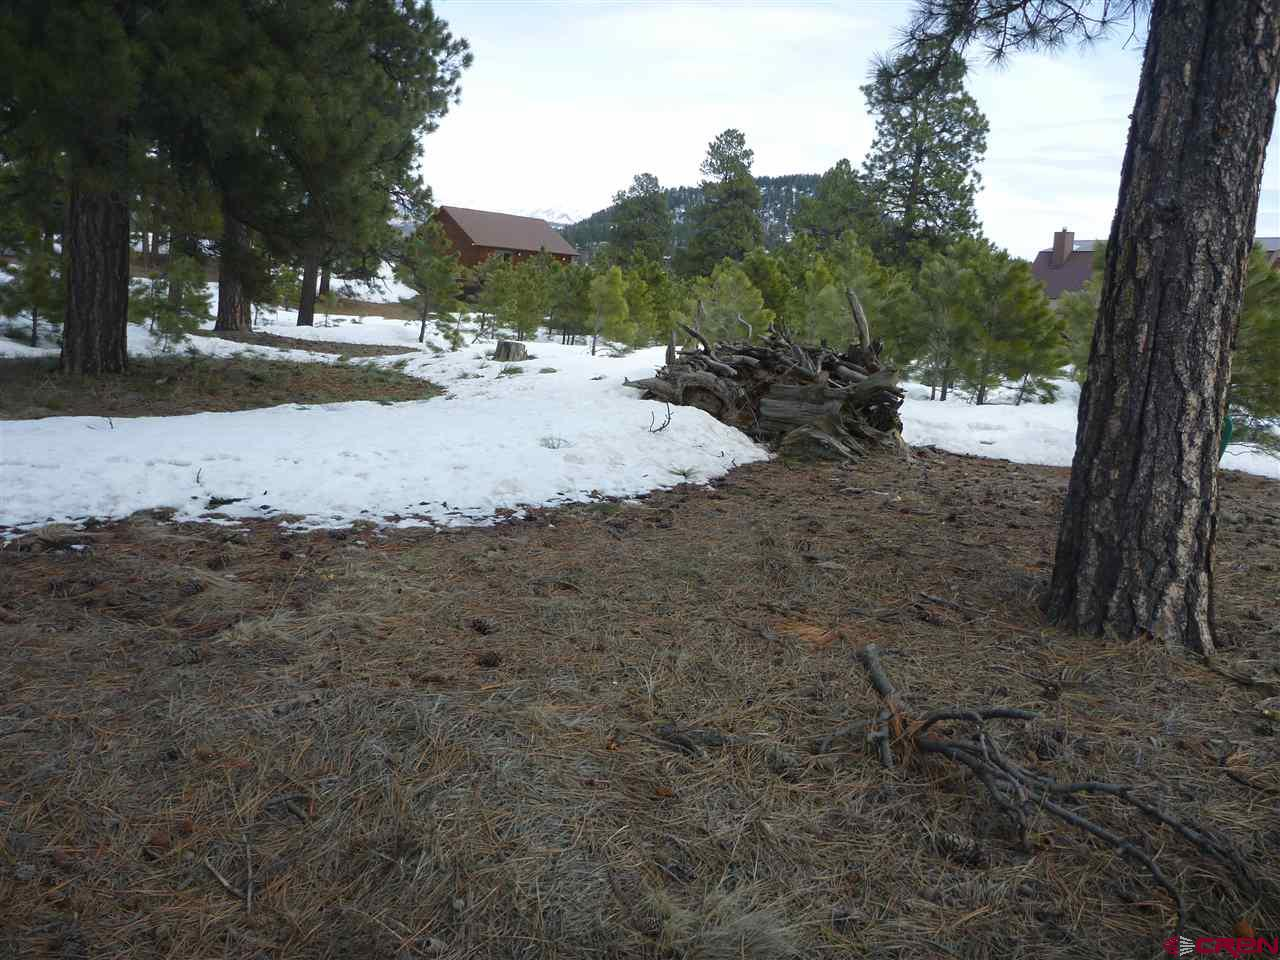 MLS# 755993 - 2 - 30 Croton Court, Pagosa Springs, CO 81147